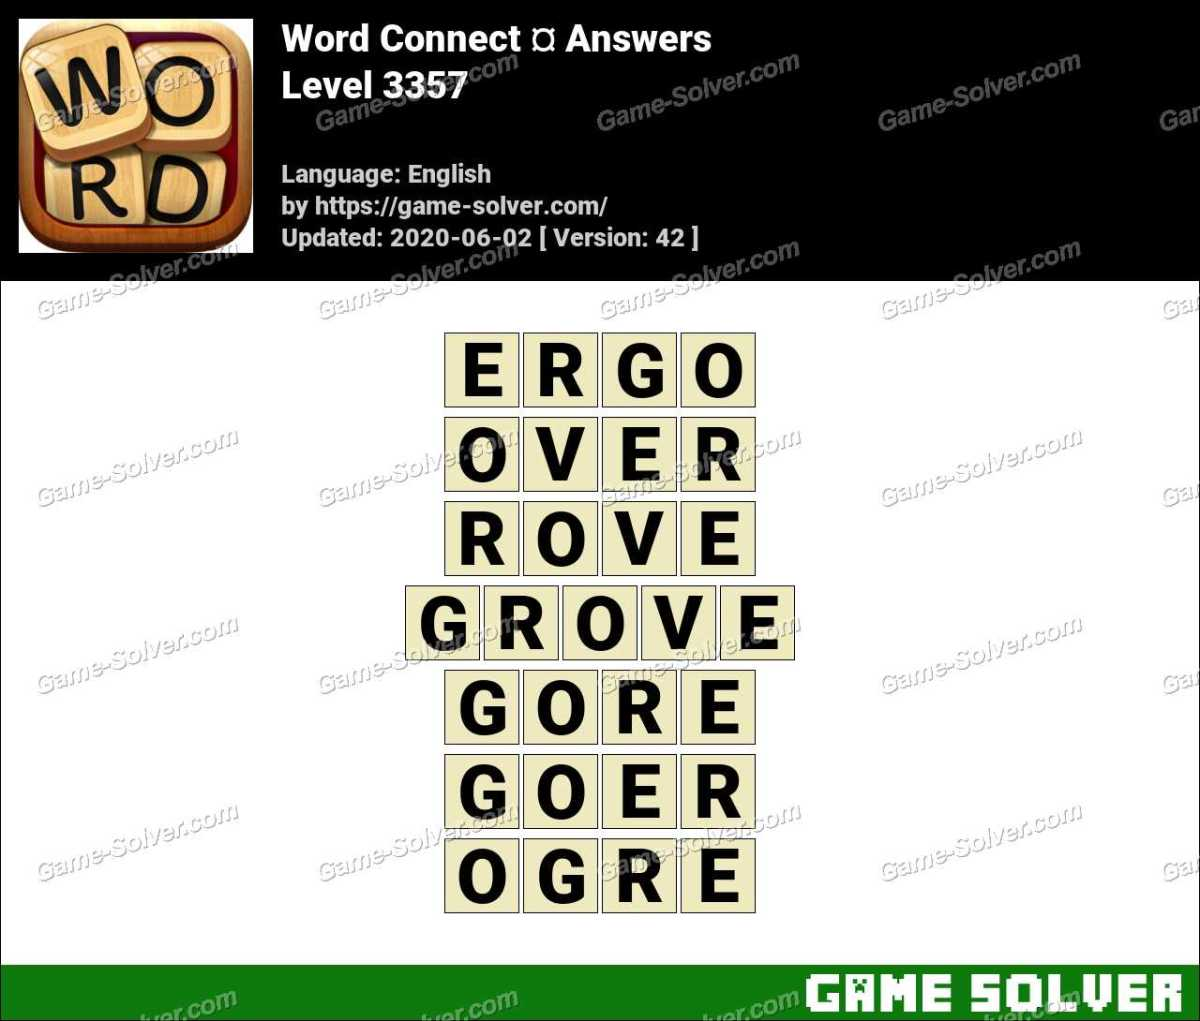 Word Connect Level 3357 Answers